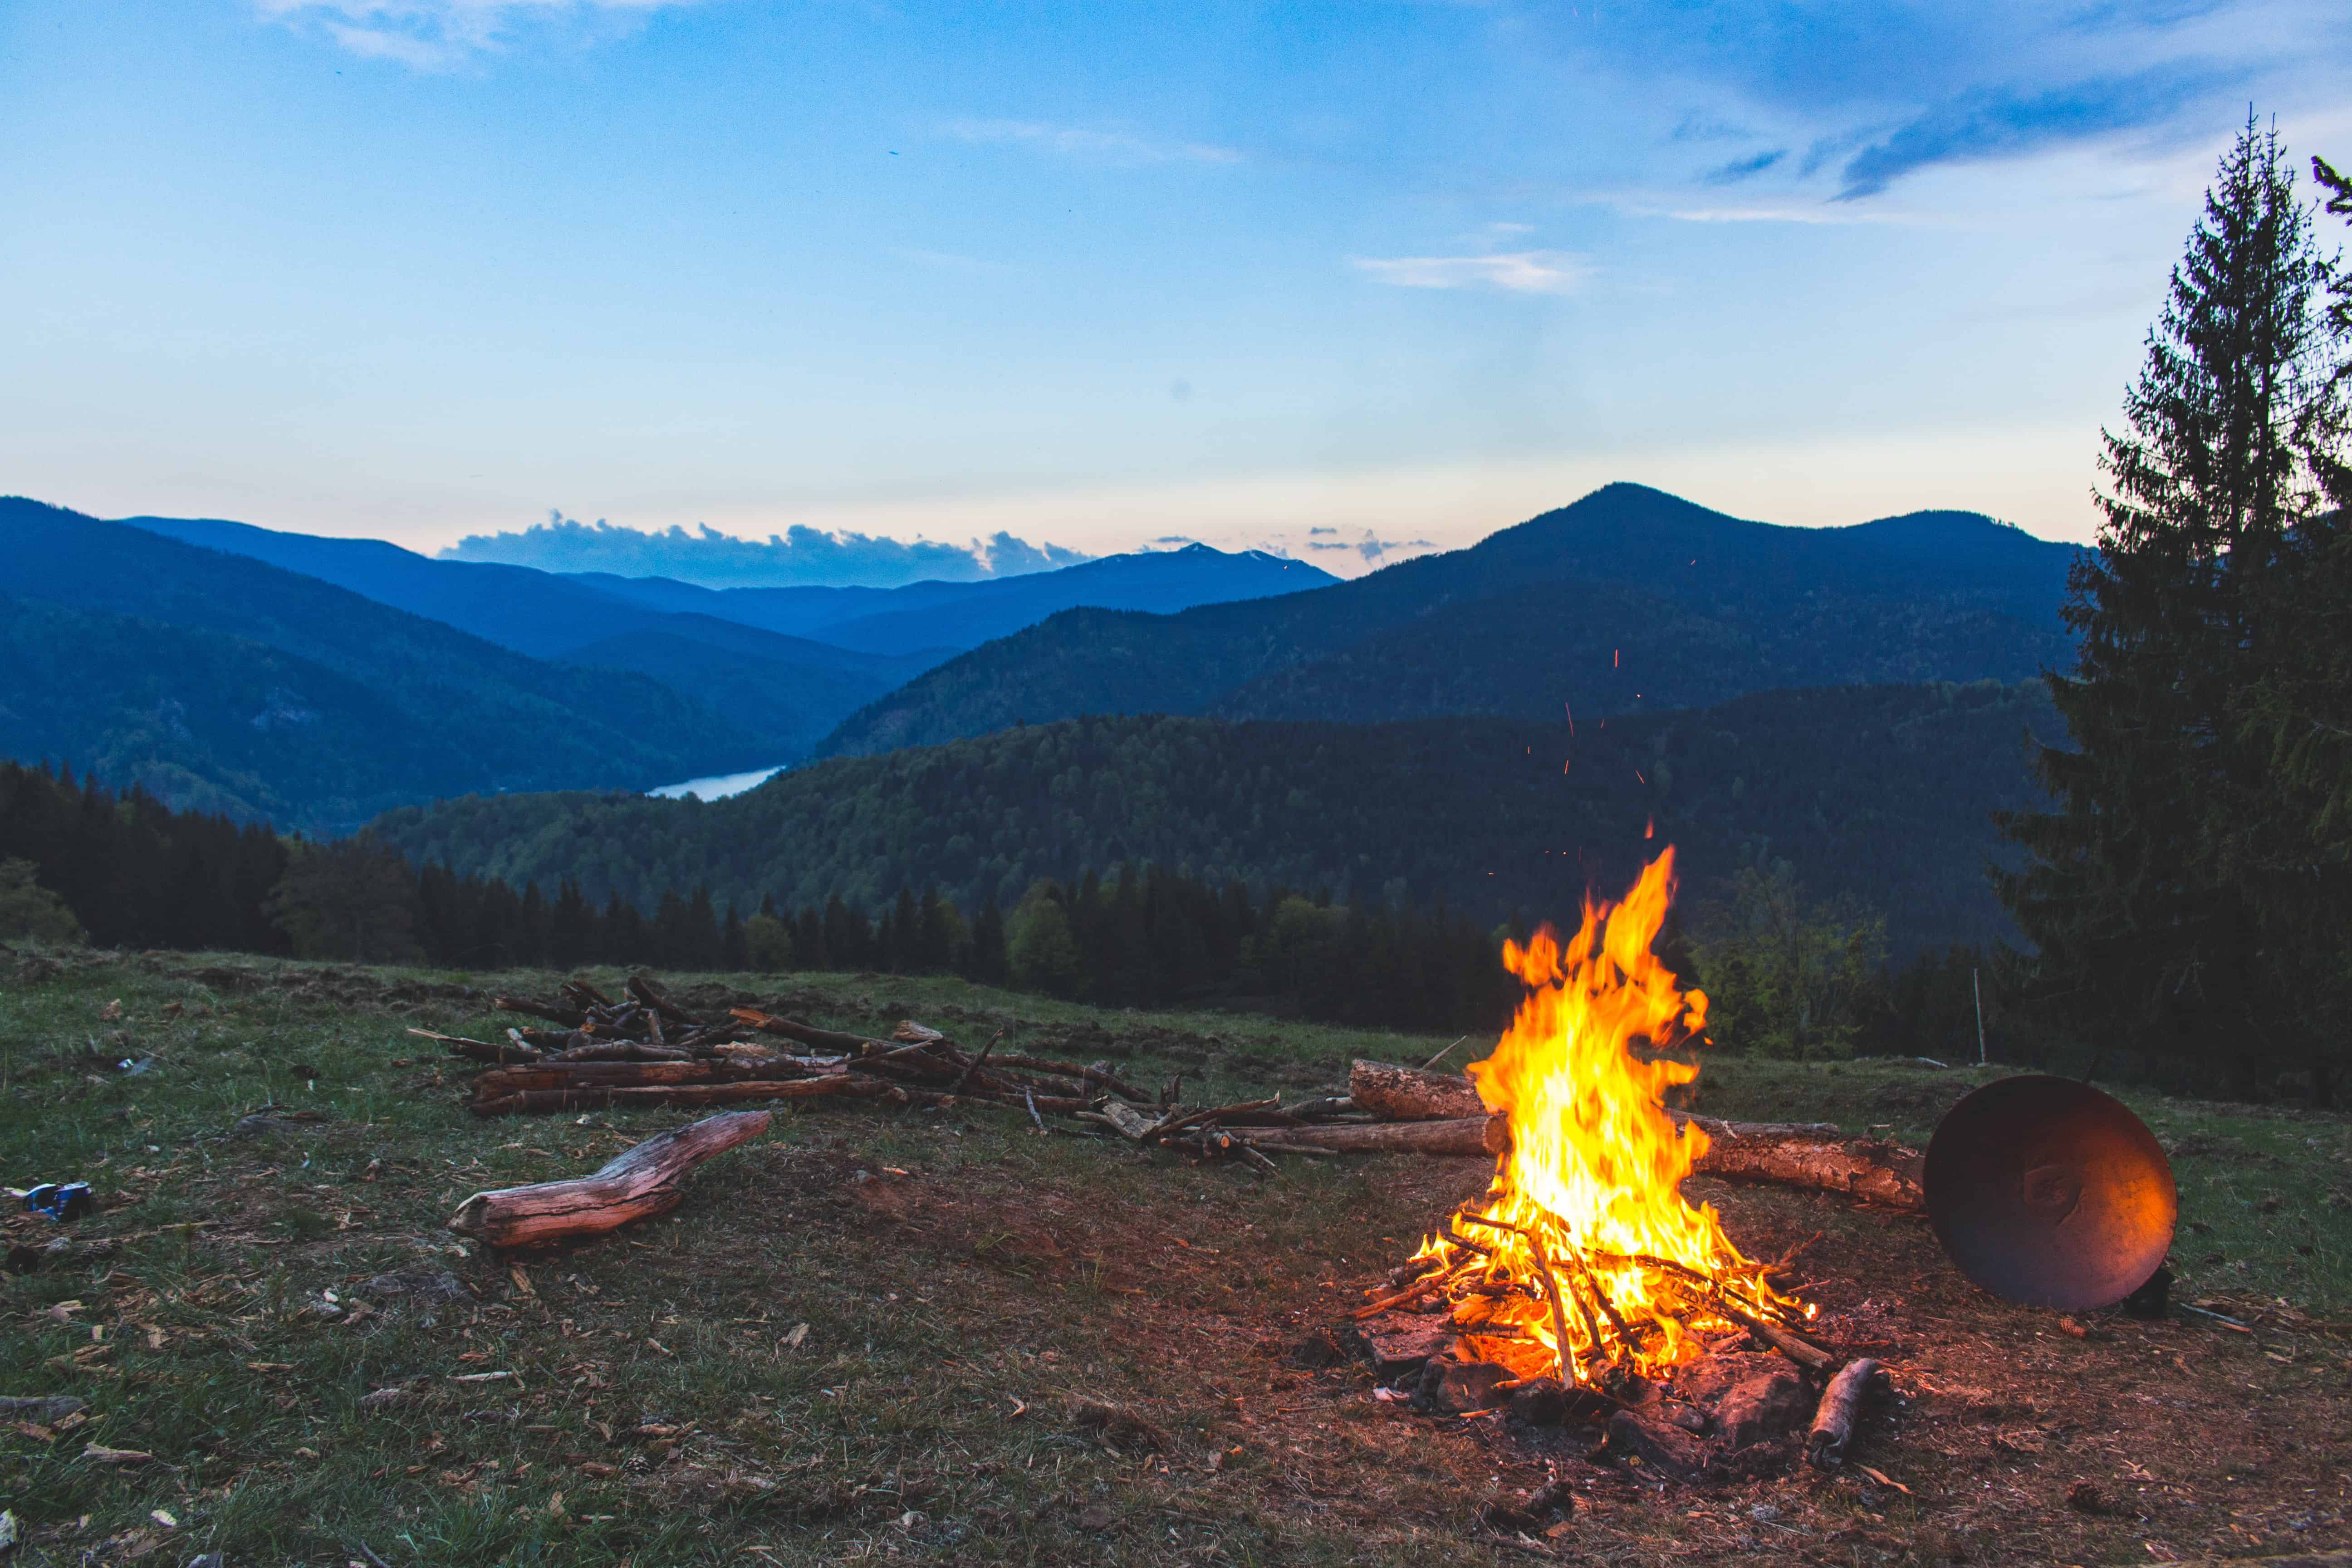 bonfire at the side of the mountain